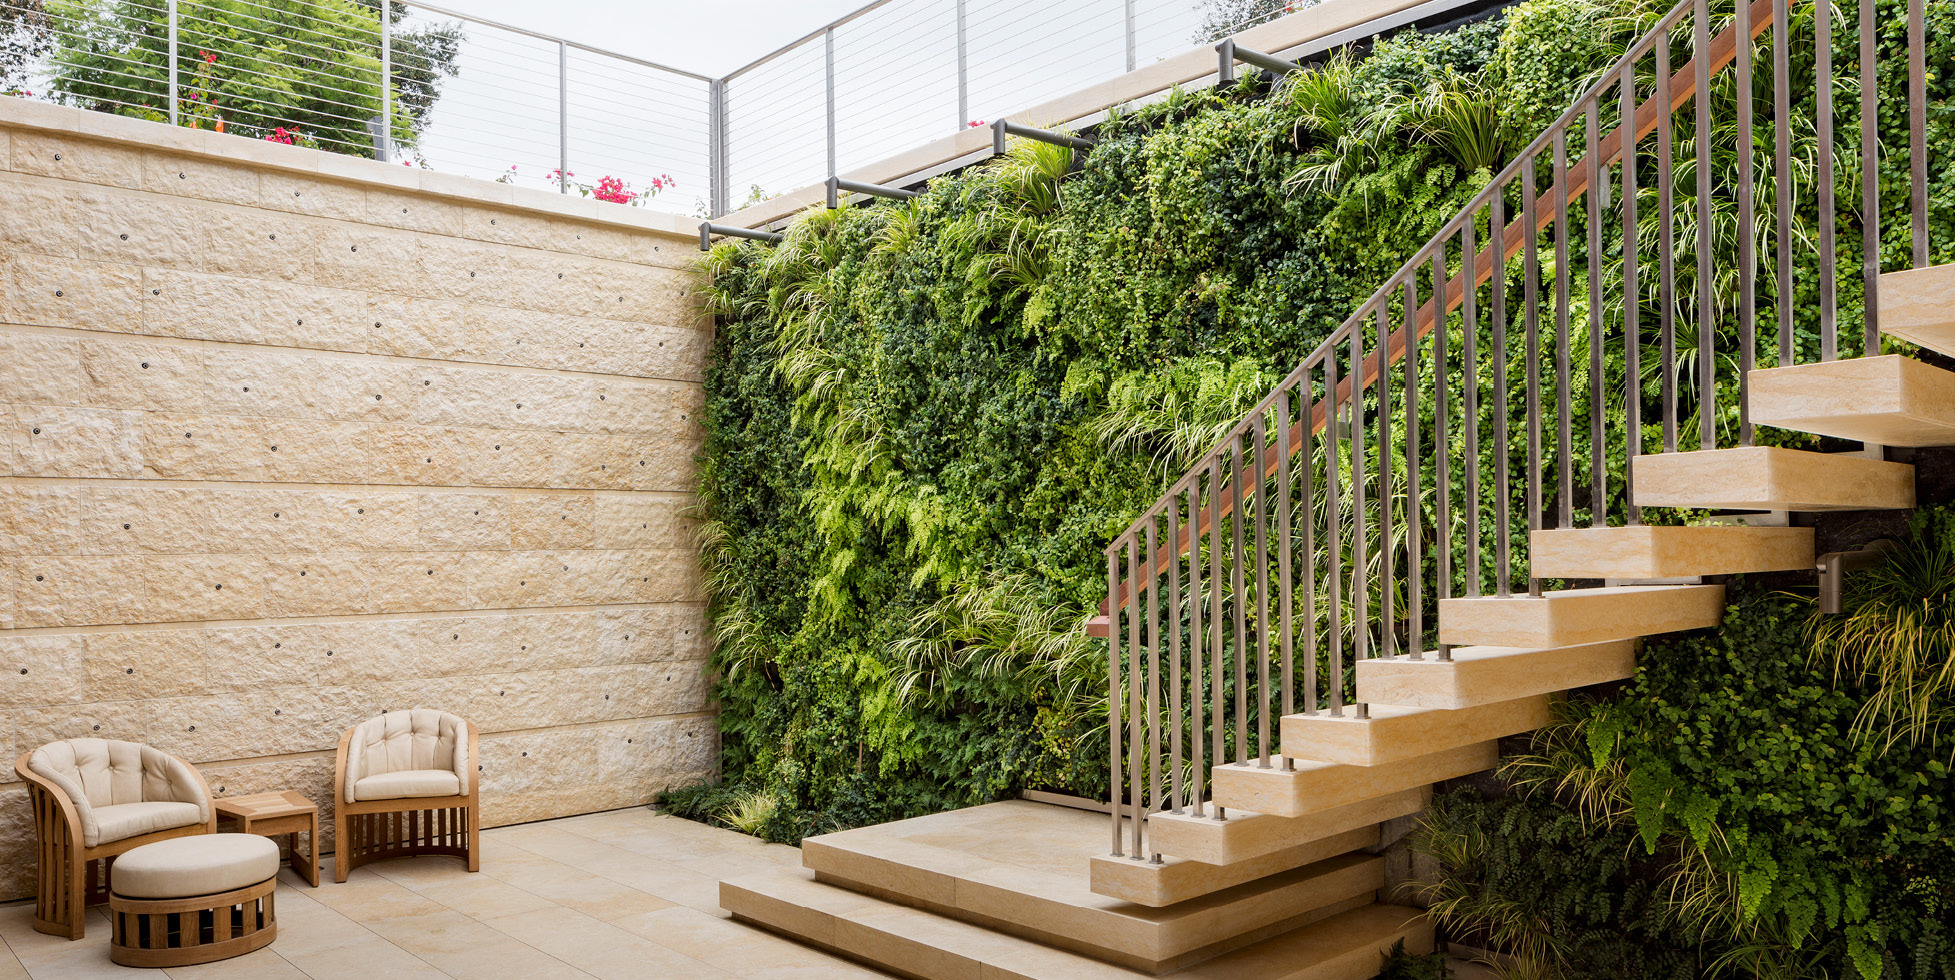 Atherton Residence Living Wall by Habitat Horticulture - View 3